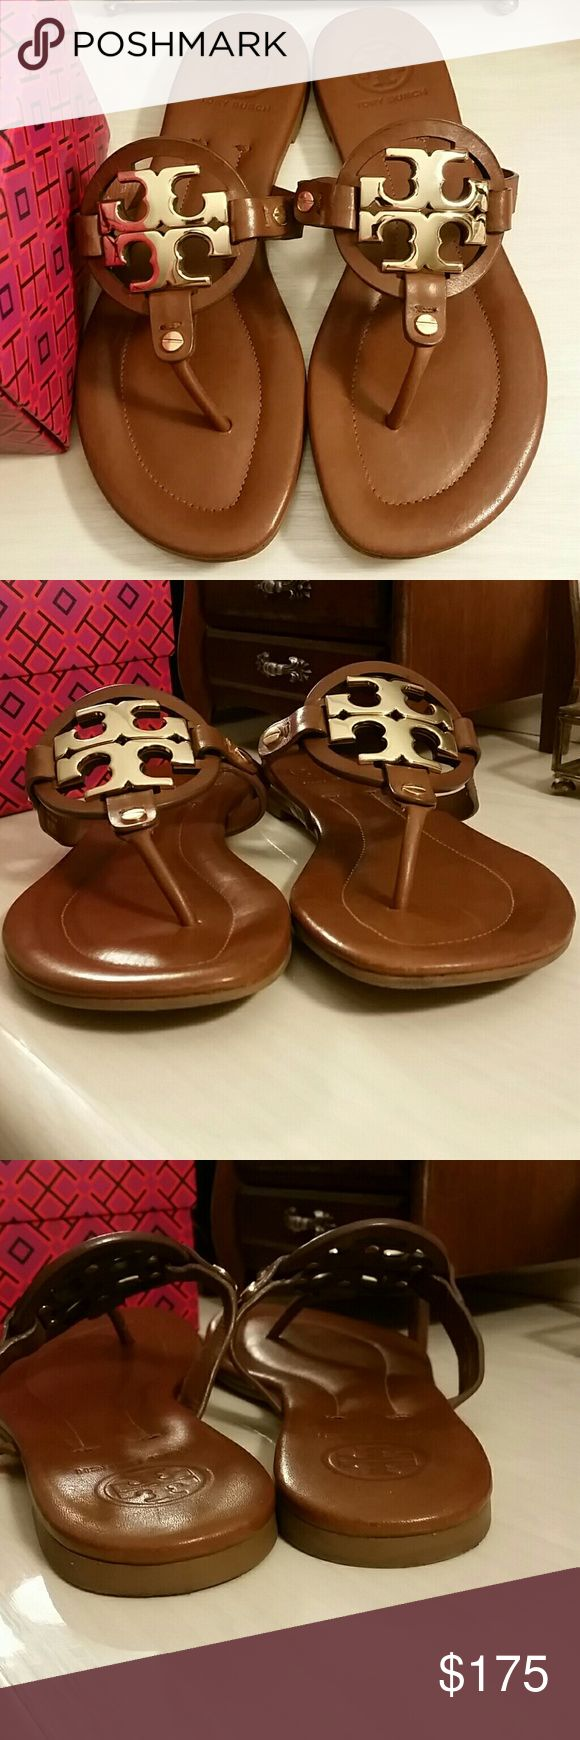 Tory Burch Miller 2 Sandals in Vintage Vachetta ----------PRICE FIRM--------- Tory Burch Miller 2 Sandal in Vintage Vachetta with Gold Emblem. Great pre-owned condition  Leather upper and lining.  Size 7. The Miller 2 style fit true to size in my opinion.  -RARE-Tory no longer produces this style and they are hard to come by in this condition.  Perfect to pair with your favorite LV.  Will include a Tory Burch box for storage (pictured).  *No trades/holds, but thank you * --------PRICE…